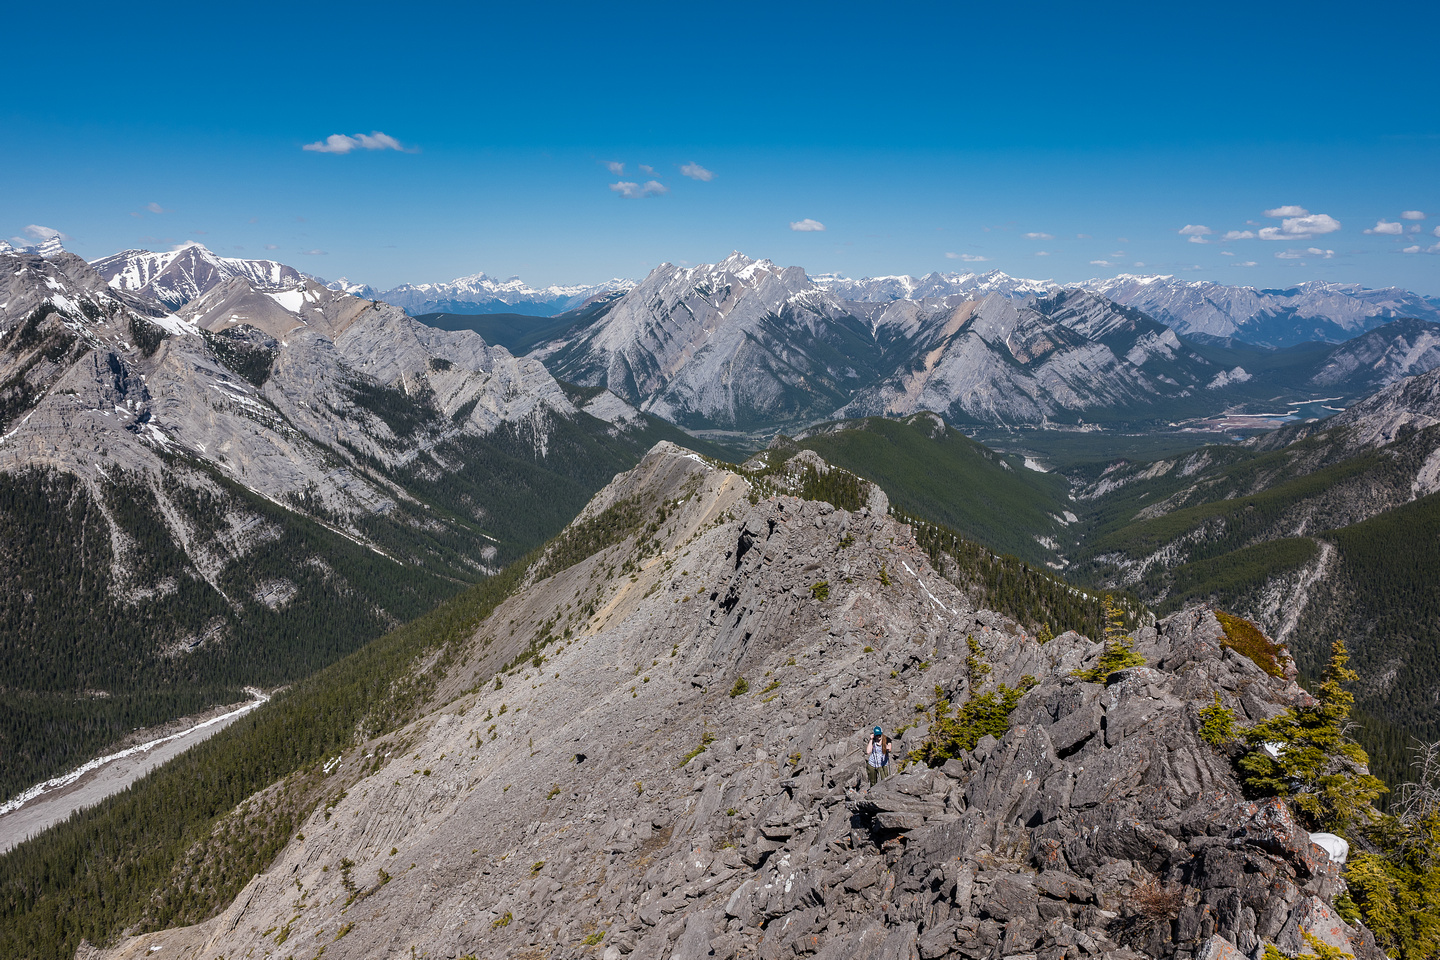 Looking back down the long ridge towards Skogan Peak in the distance. Our long exit via Wasootch Creek at bottom left.